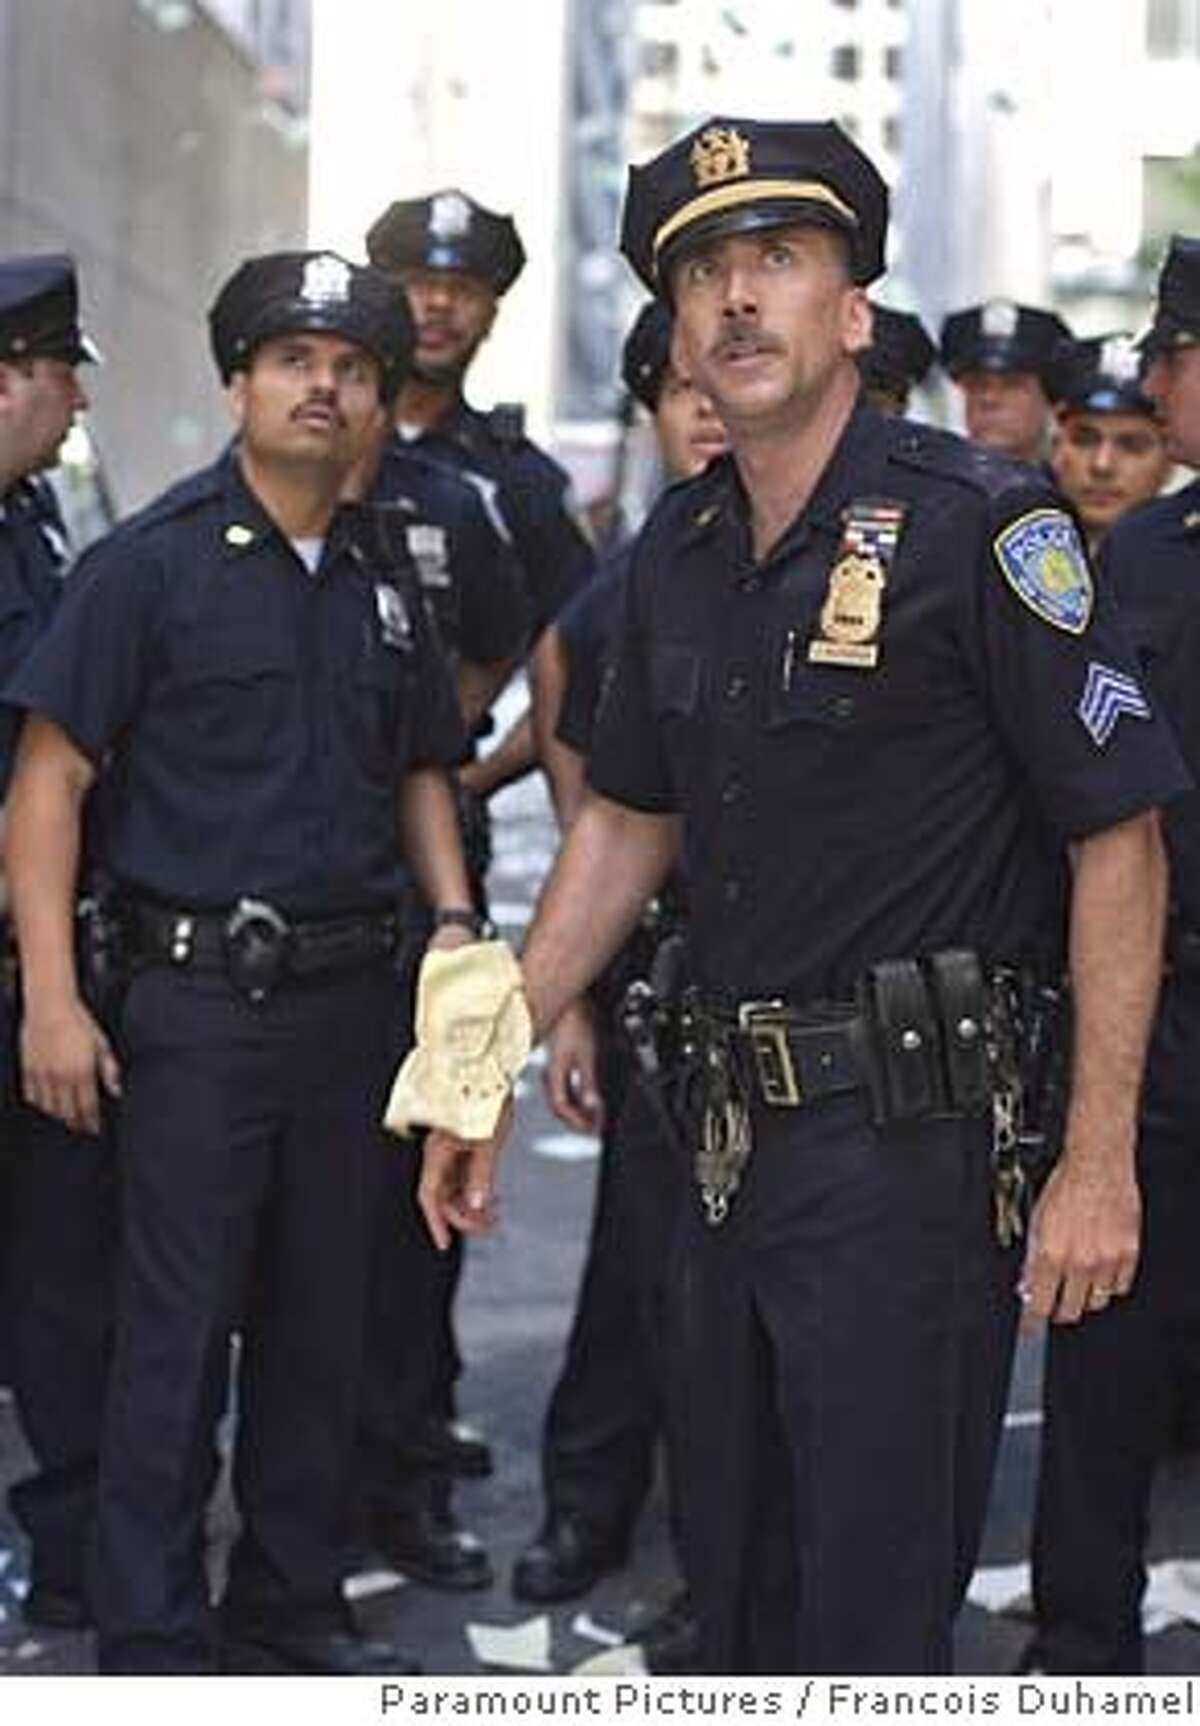 """In this photo provided by Paramount Pictures, Michael Pea as Will Jimeno (left); and Nicolas Cage as John McLoughlin (right) in """"World Trade Center."""" (AP Photo/Paramount Pictures/Francois Duhamel)"""